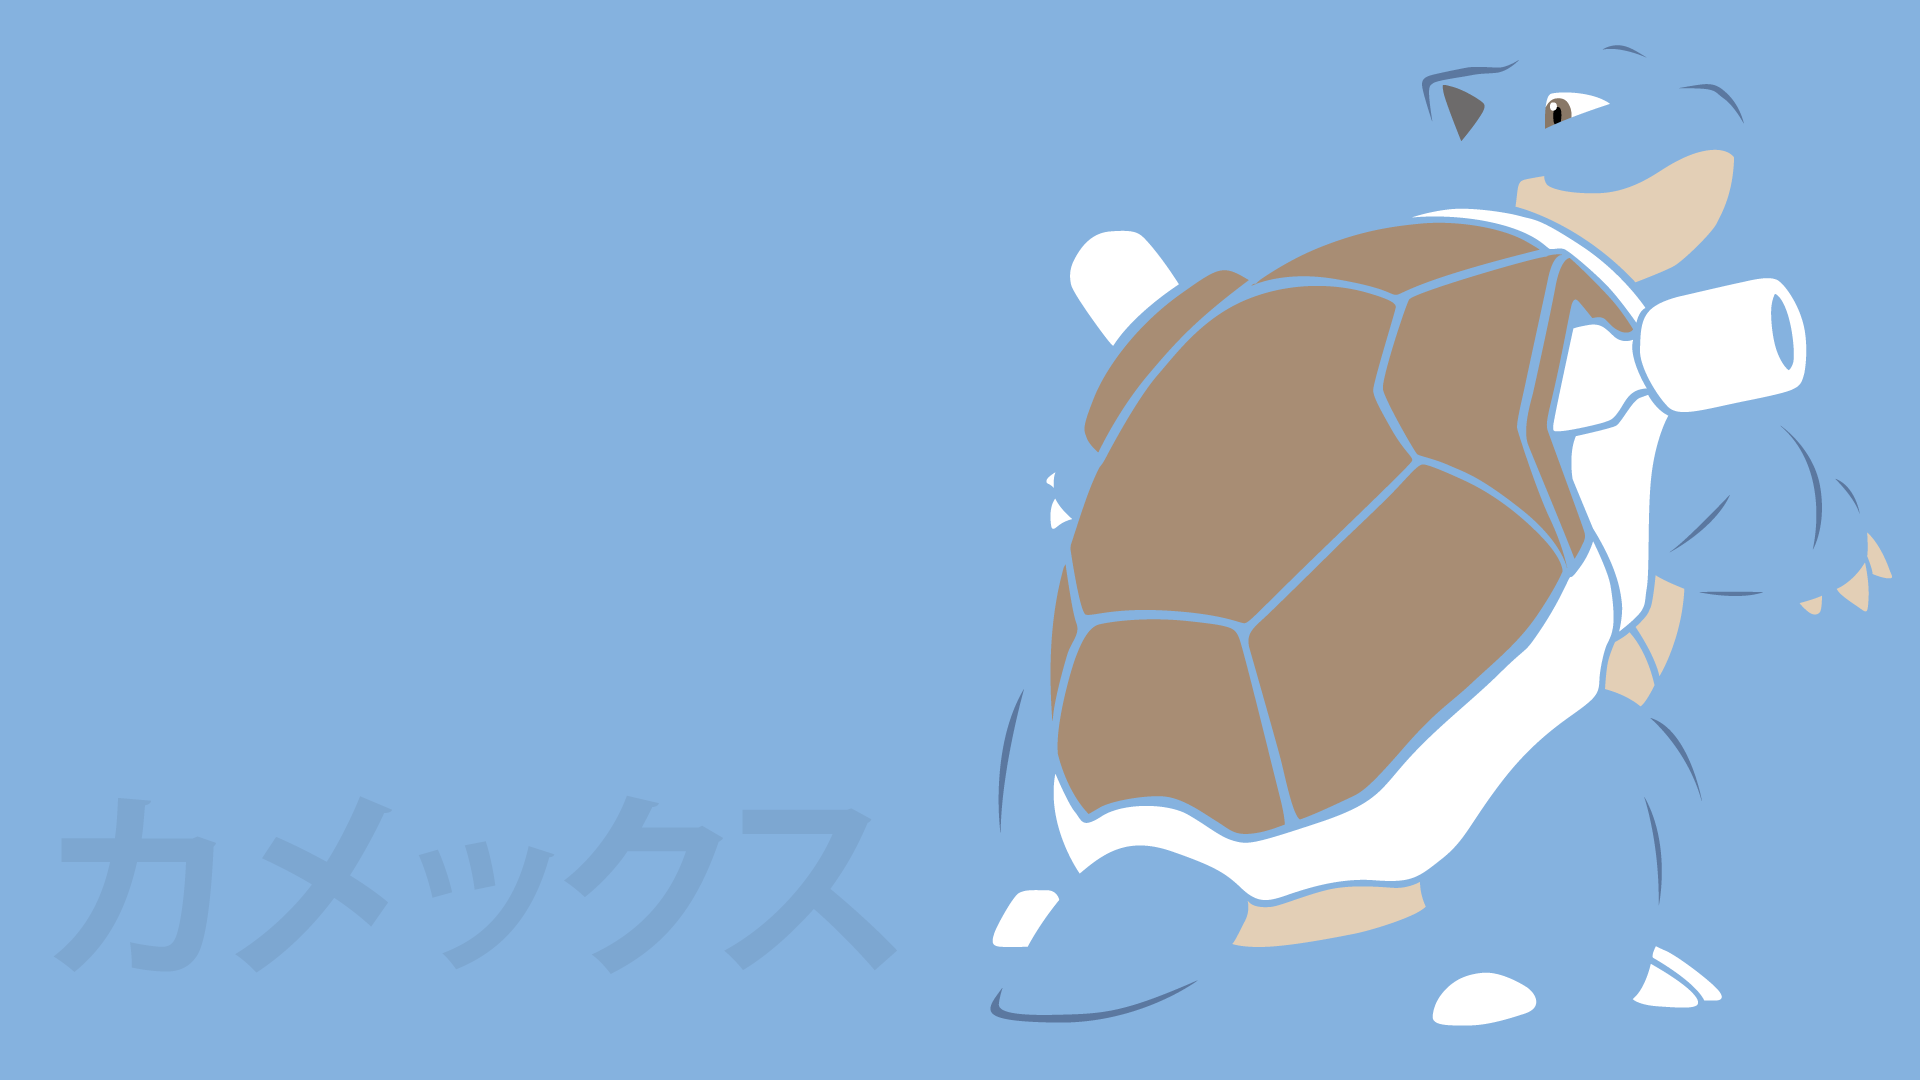 blastoise by dannymybrother on deviantart